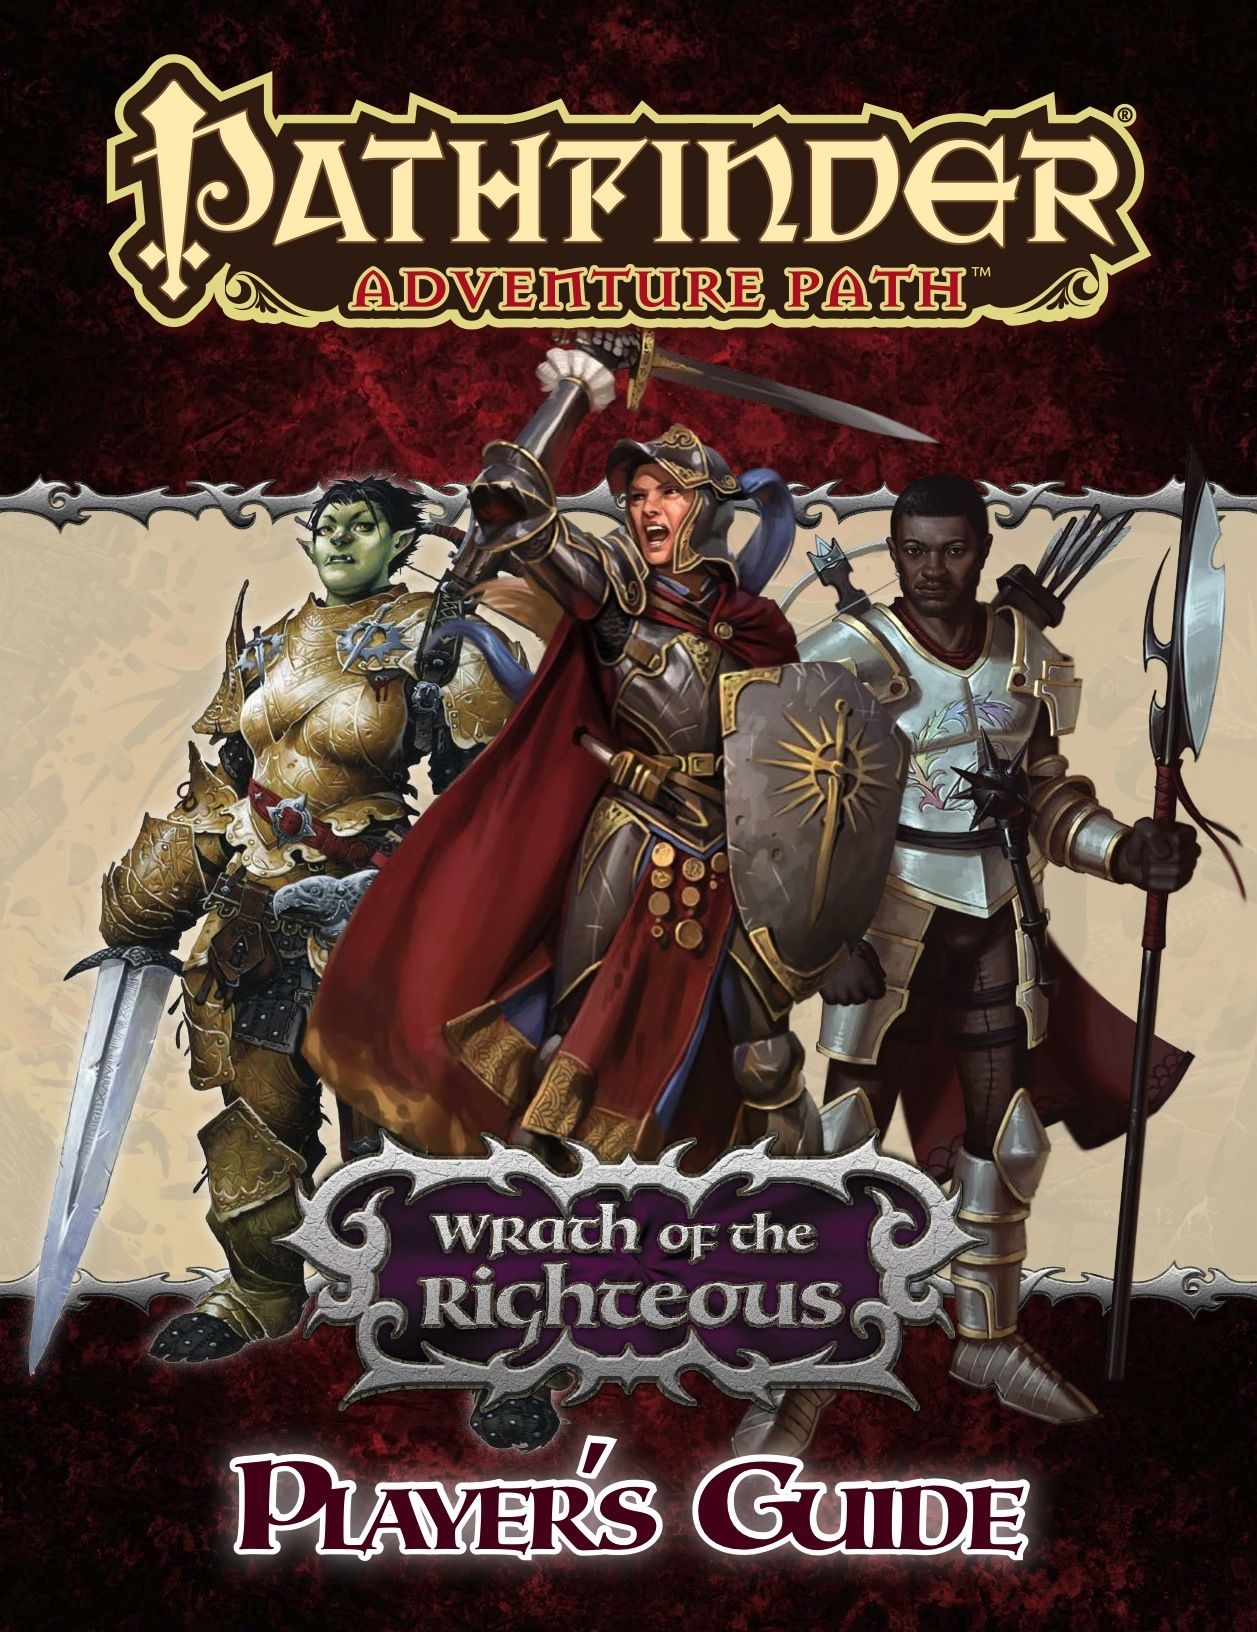 Pathfinder Adventure Path: Wrath of the Righteous Player's